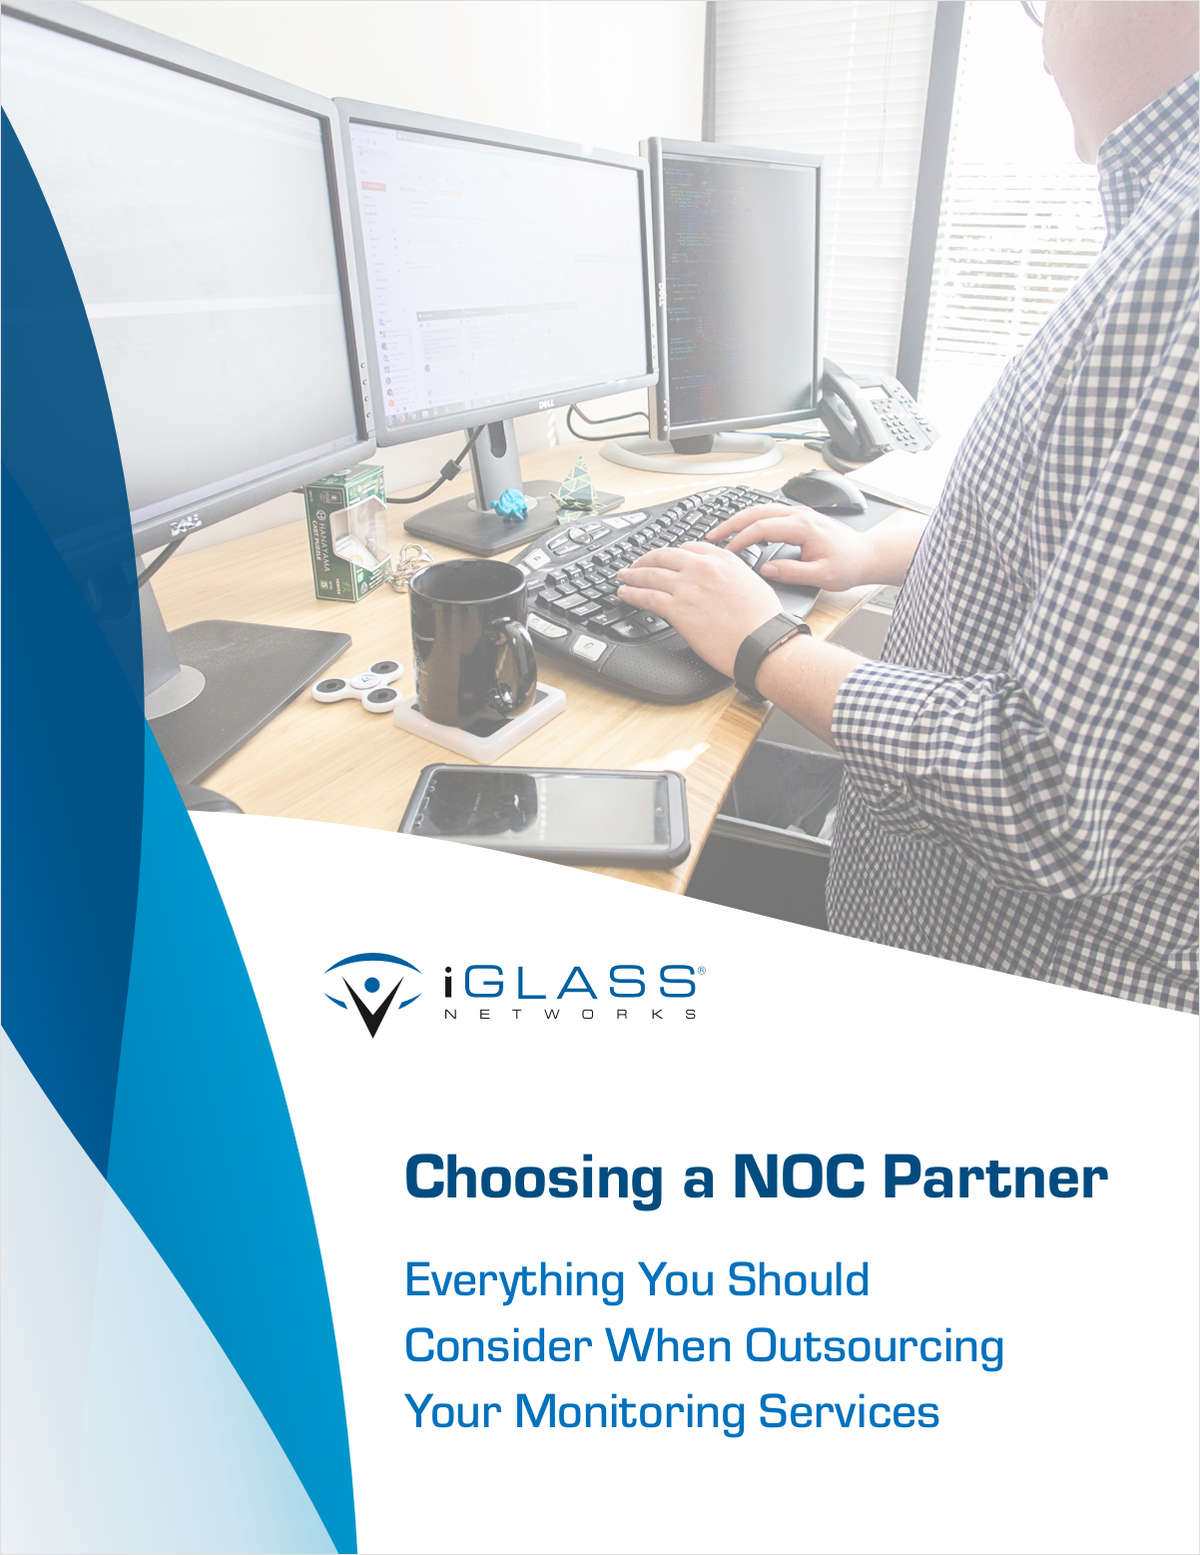 Choosing a NOC Partner: Everything You Should Consider When Outsourcing Your Monitoring Services